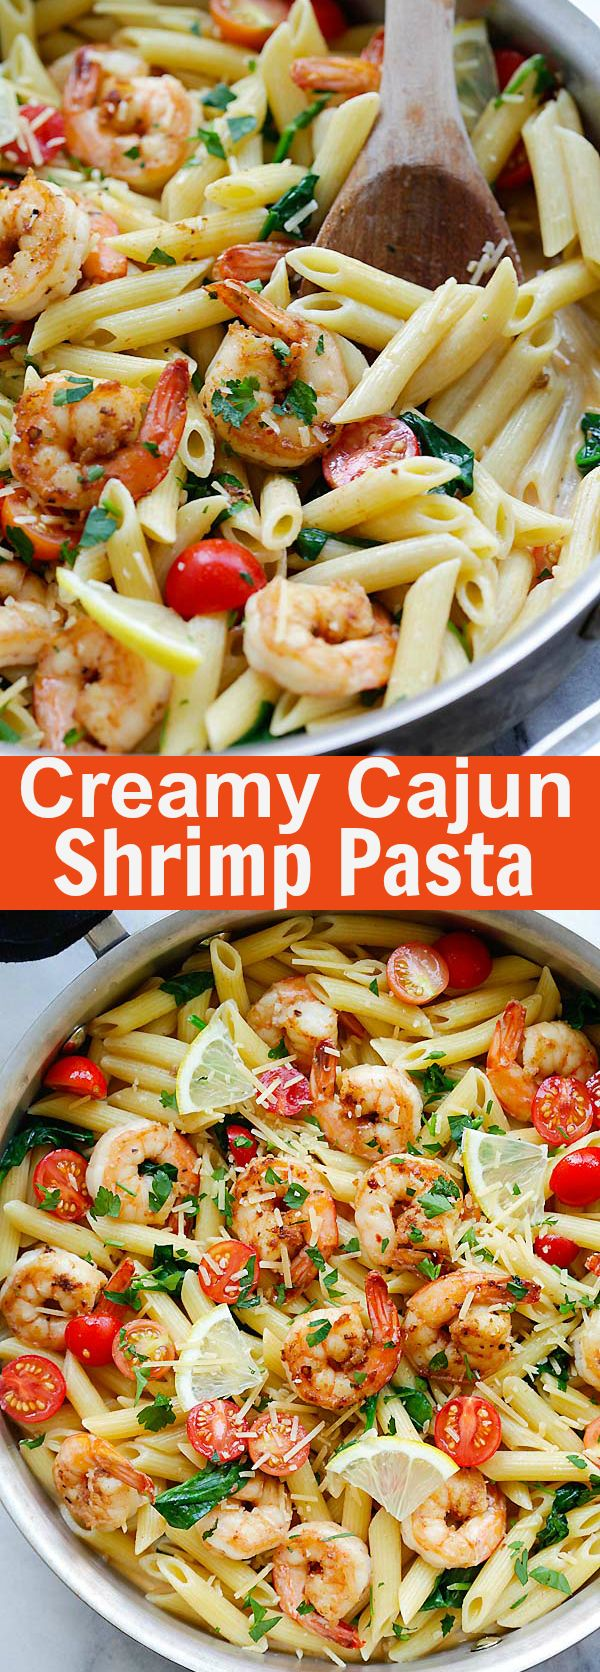 Cajun Shrimp Pasta – crazy delicious creamy pasta with cajun shrimp, spinach and Parmesan cheese. Dinner takes 20 mins and so good | rasamalaysia.com